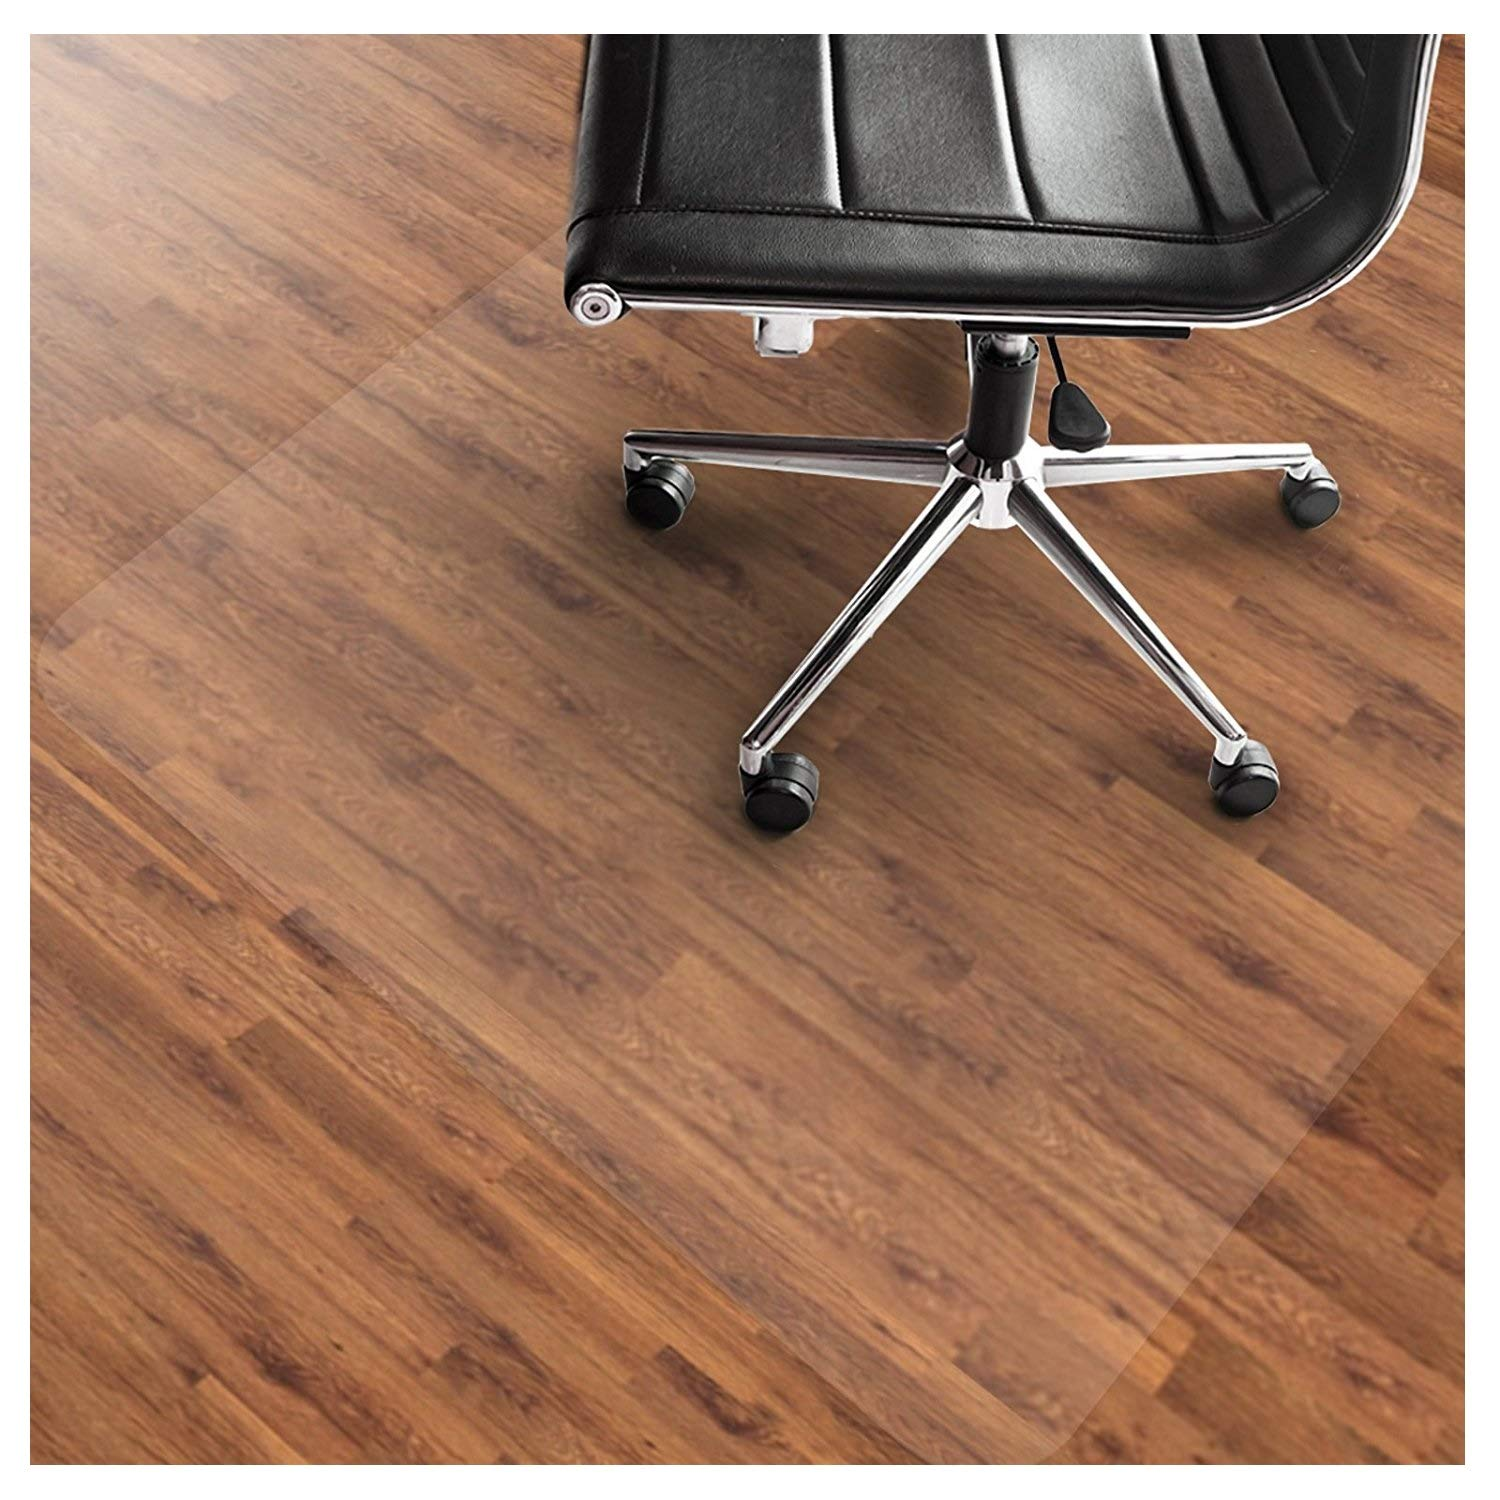 Office Marshal PVC Chair Mat for Hard Floors - 48'' x 120'' | Multiple Sizes Available | Clear, Multi-purpose Floor Protector